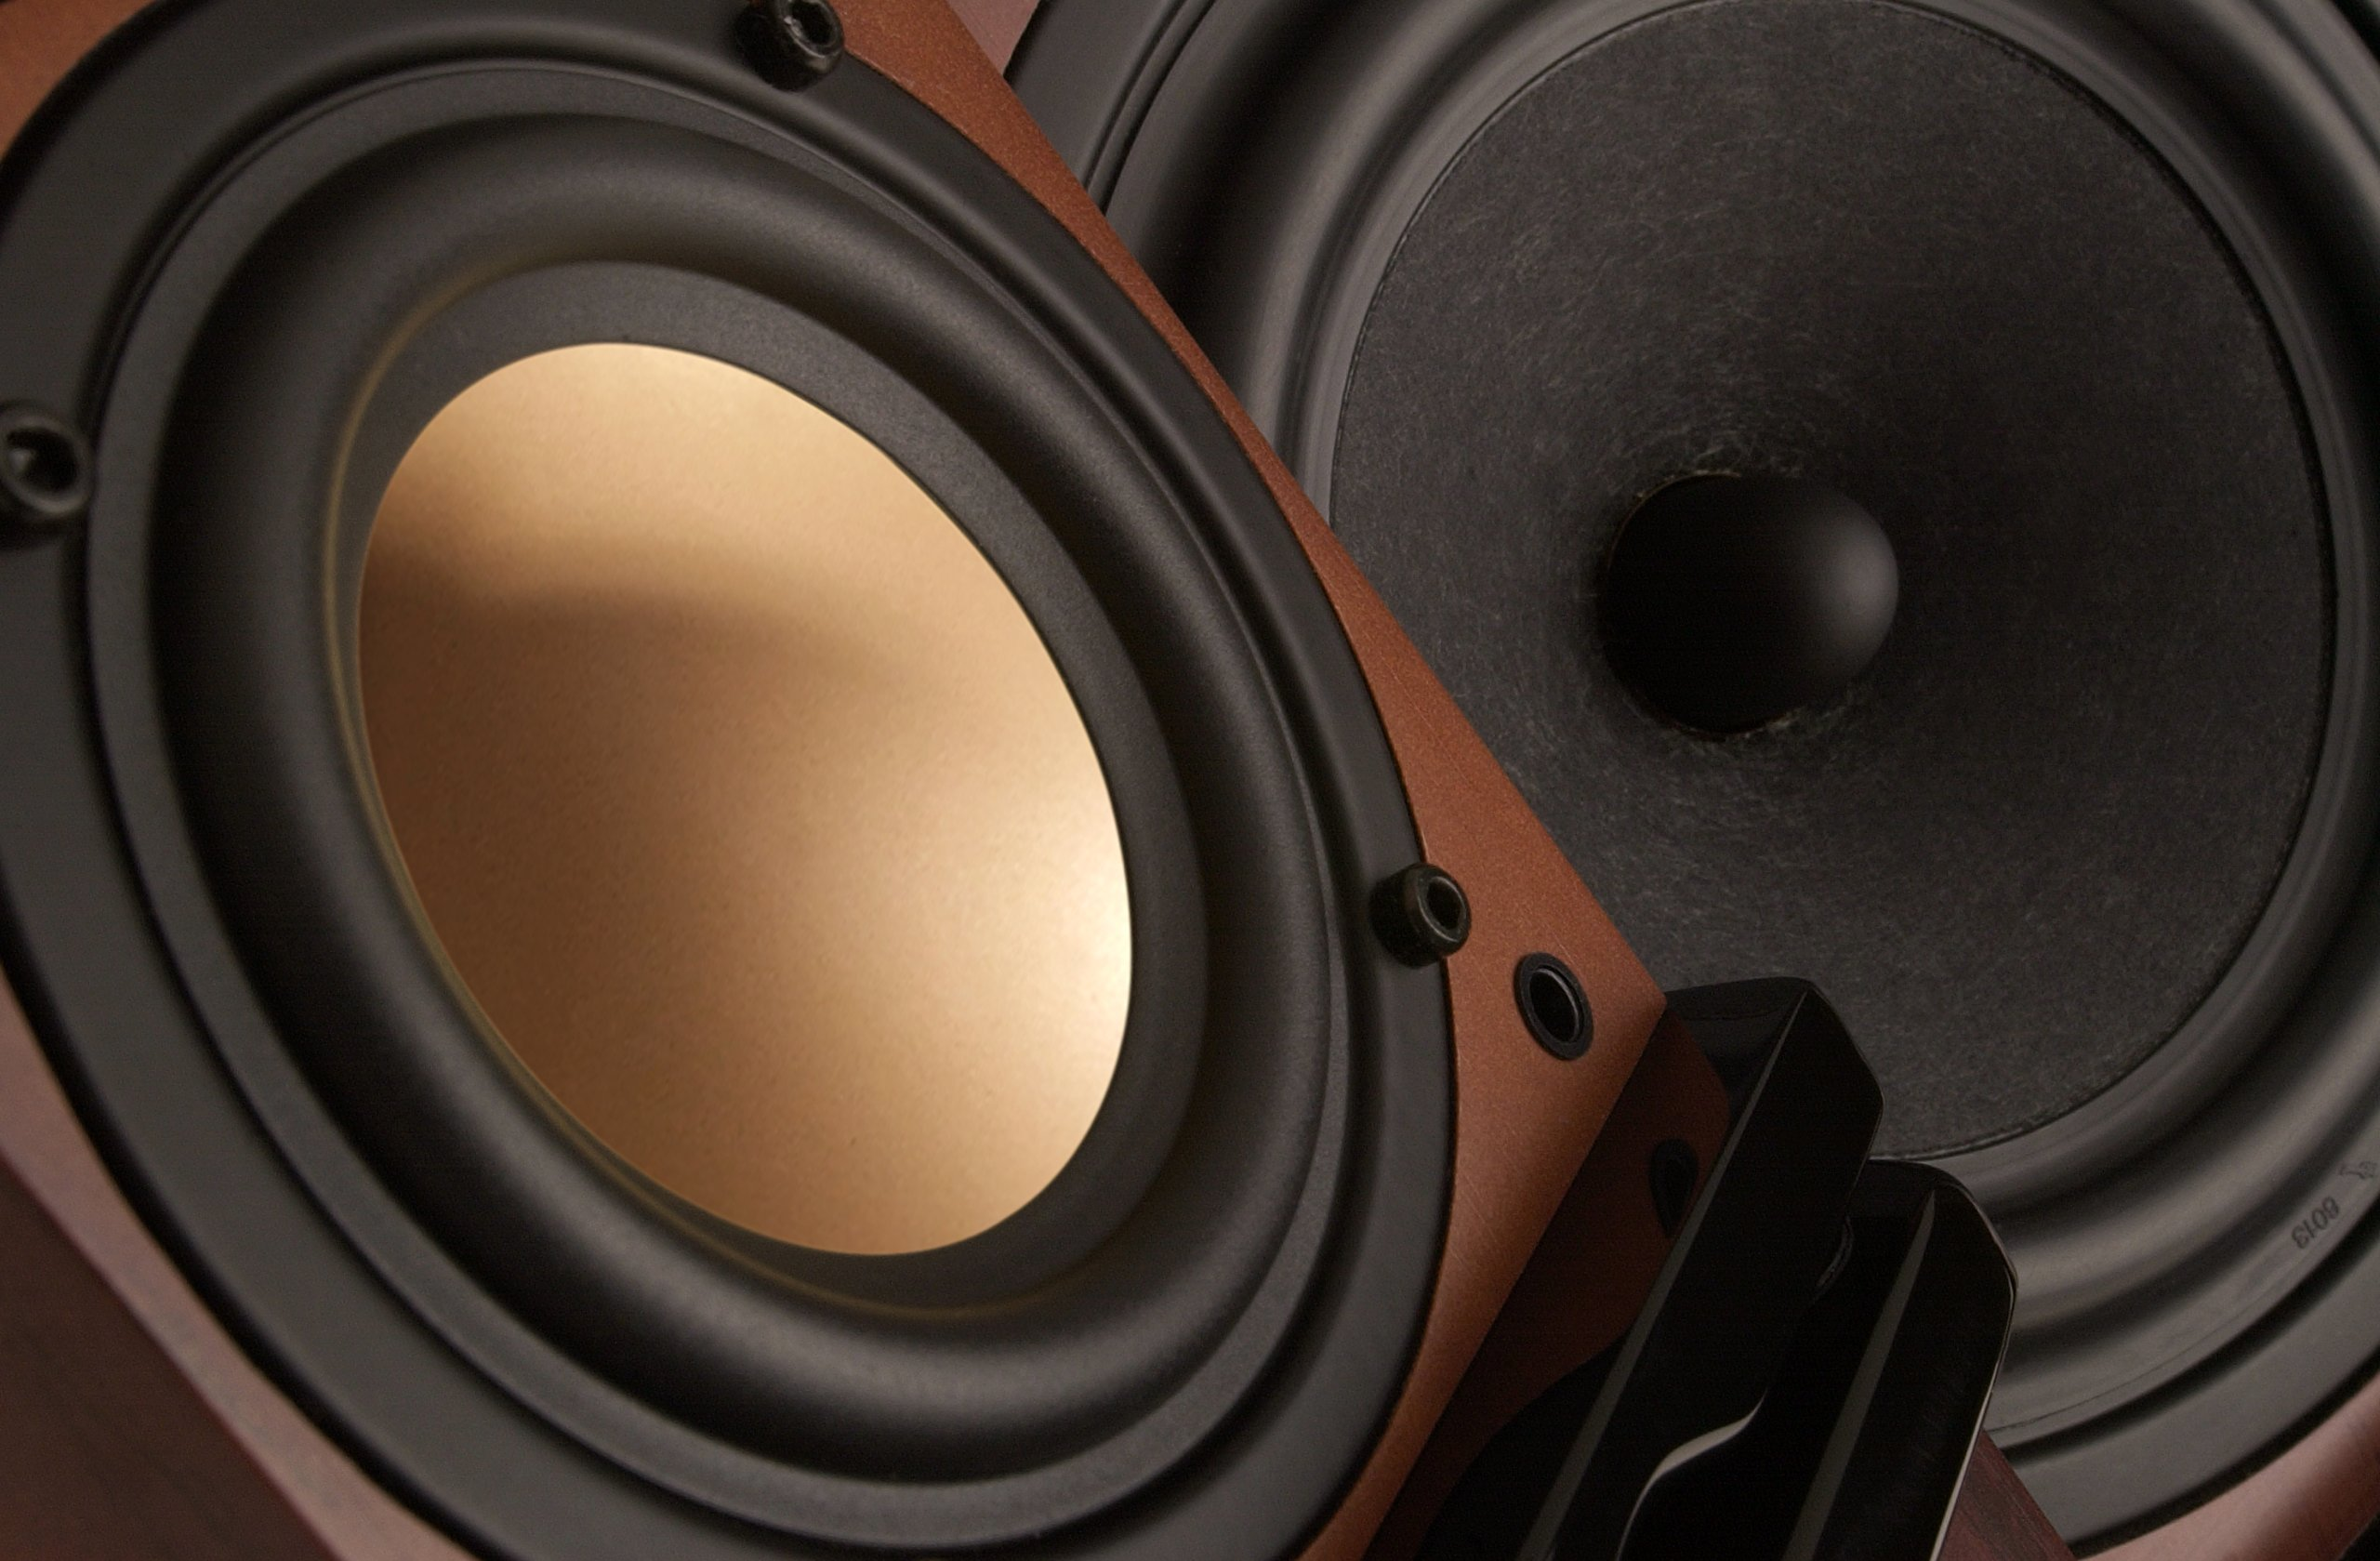 Swan Speakers - M20W - Beautiful Powered 2.1 Living Room Laptop Speakers -  6'' Subwoofer - Rosewood with Pink Gold Aluminium Drivers and Piano Finish - 50W RMS Internal Amplifier by Swan Speakers (Image #4)